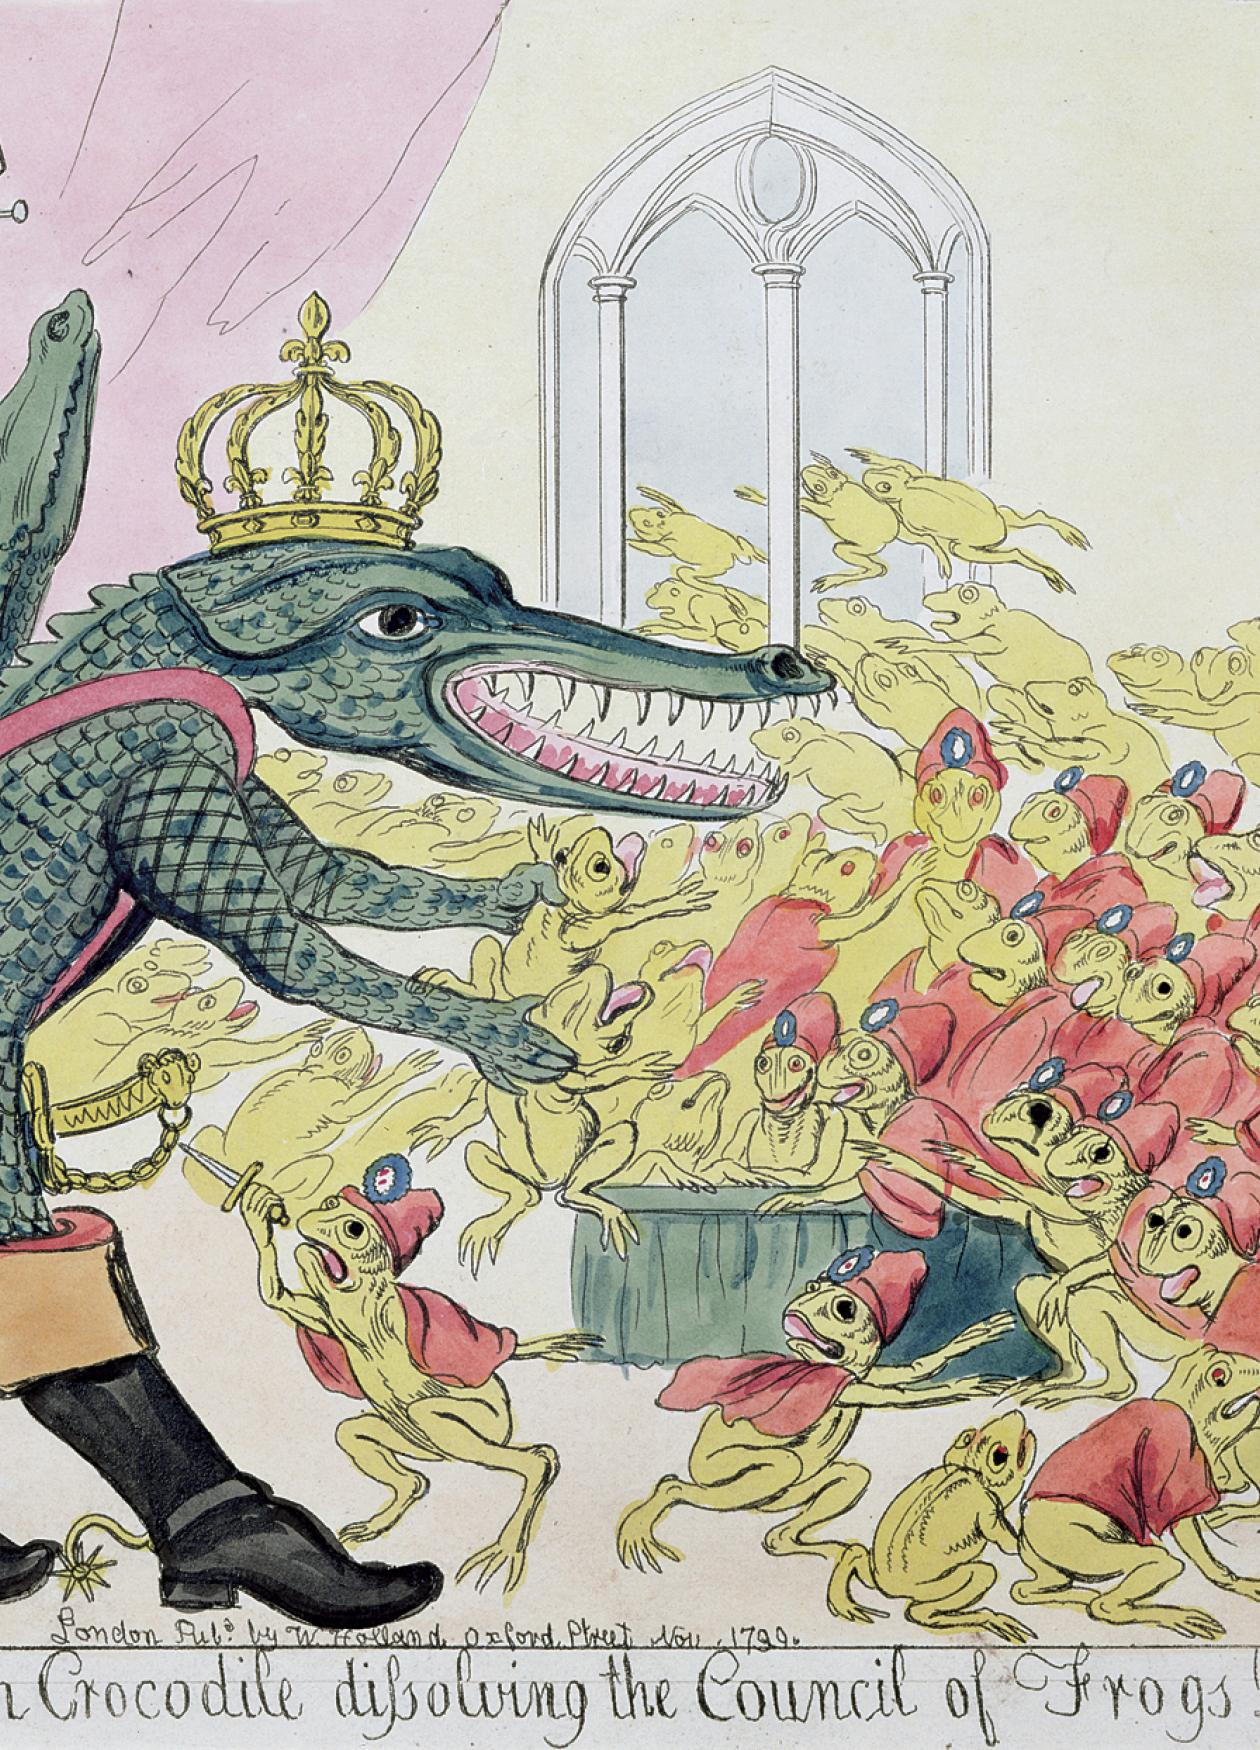 Cartoon of Napoleon as crocodile